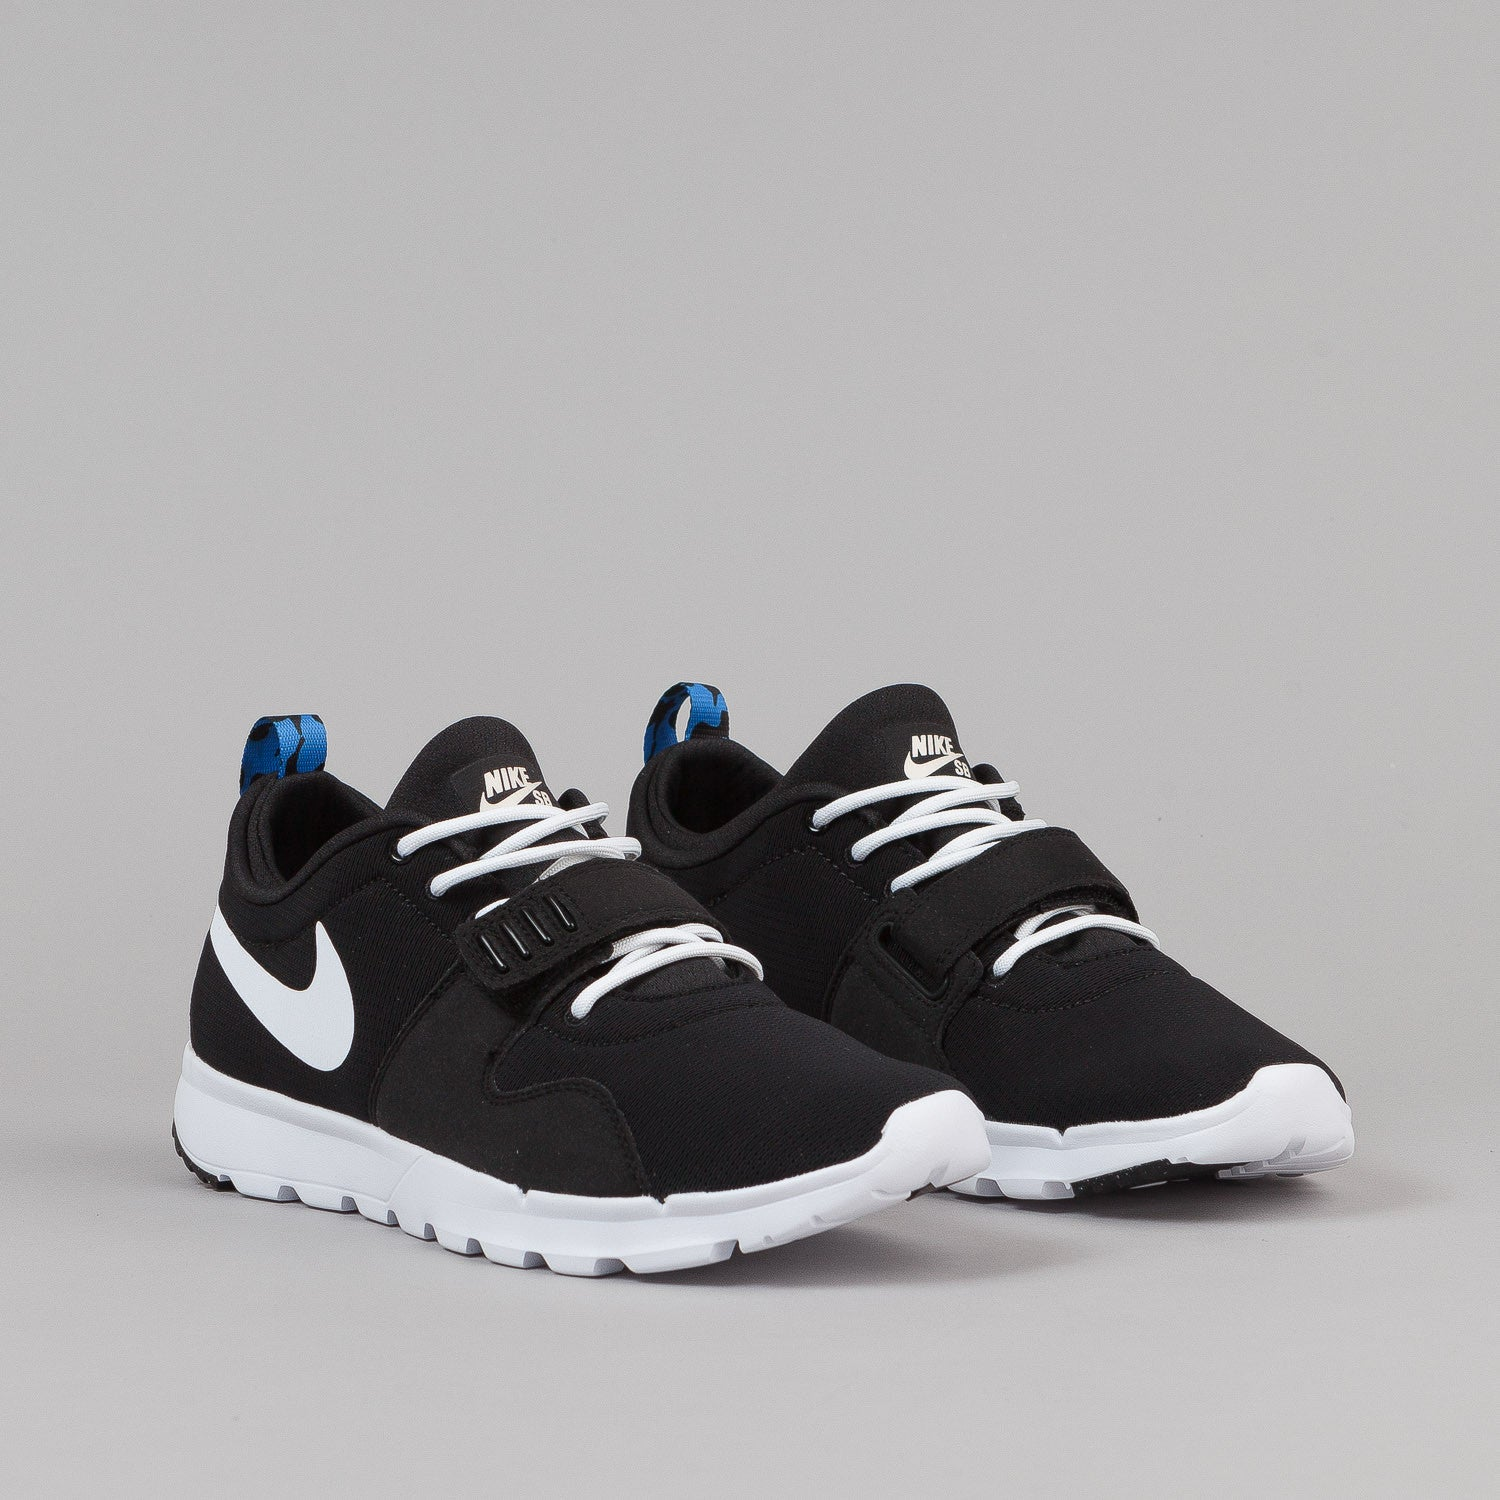 Nike SB Trainerendor SE Shoes - Black / White / Distinct Blue | Flatspot